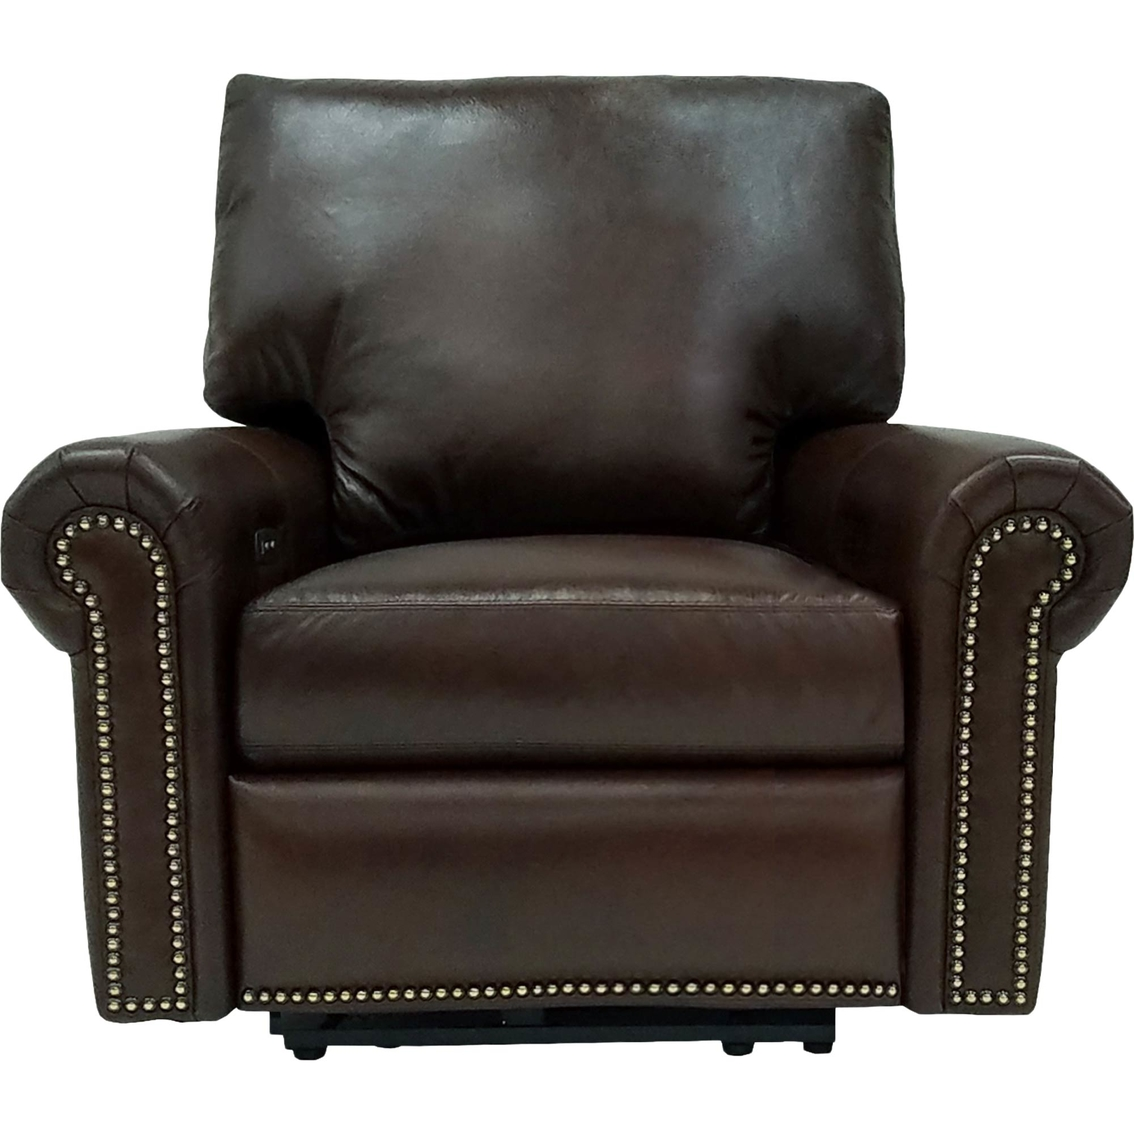 Fairfield Chairs Omnia Leather Fairfield Recliner Chairs Recliners Home